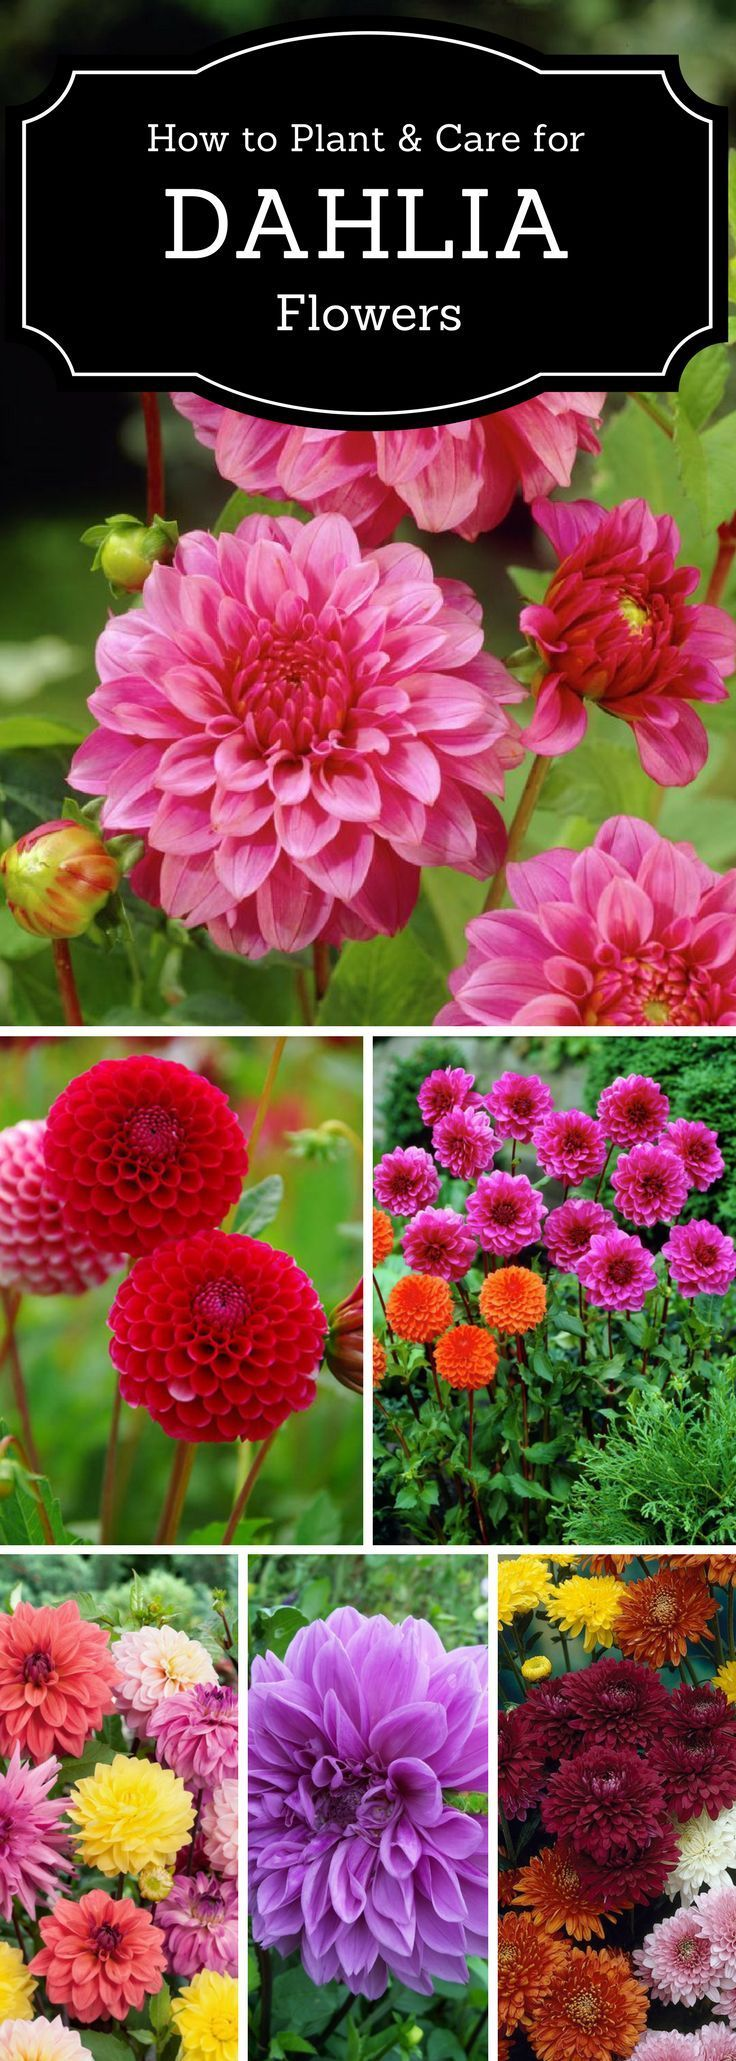 Top tips on how to plant, grow, and care for dahlia Gardening & Landscaping Project Ideas  Project Difficulty: Simple www.MaritimeVintage.com